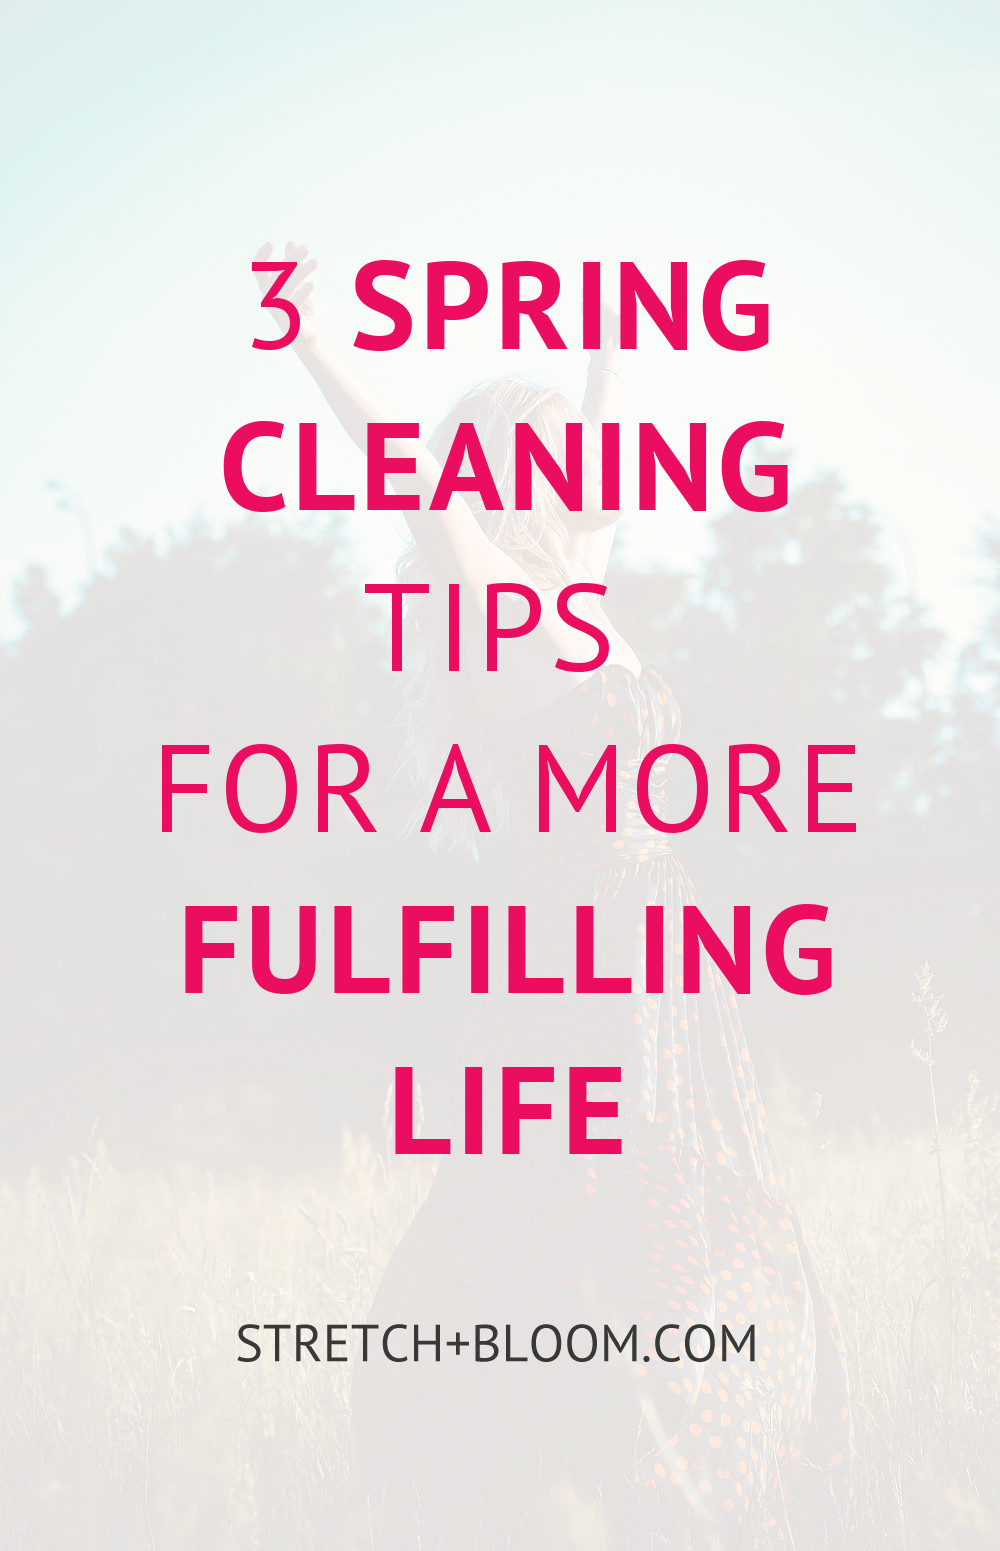 Your life is like a garden, it needs spring cleaning too. Here are 3 spring cleaning tips for a more fulfilling life.